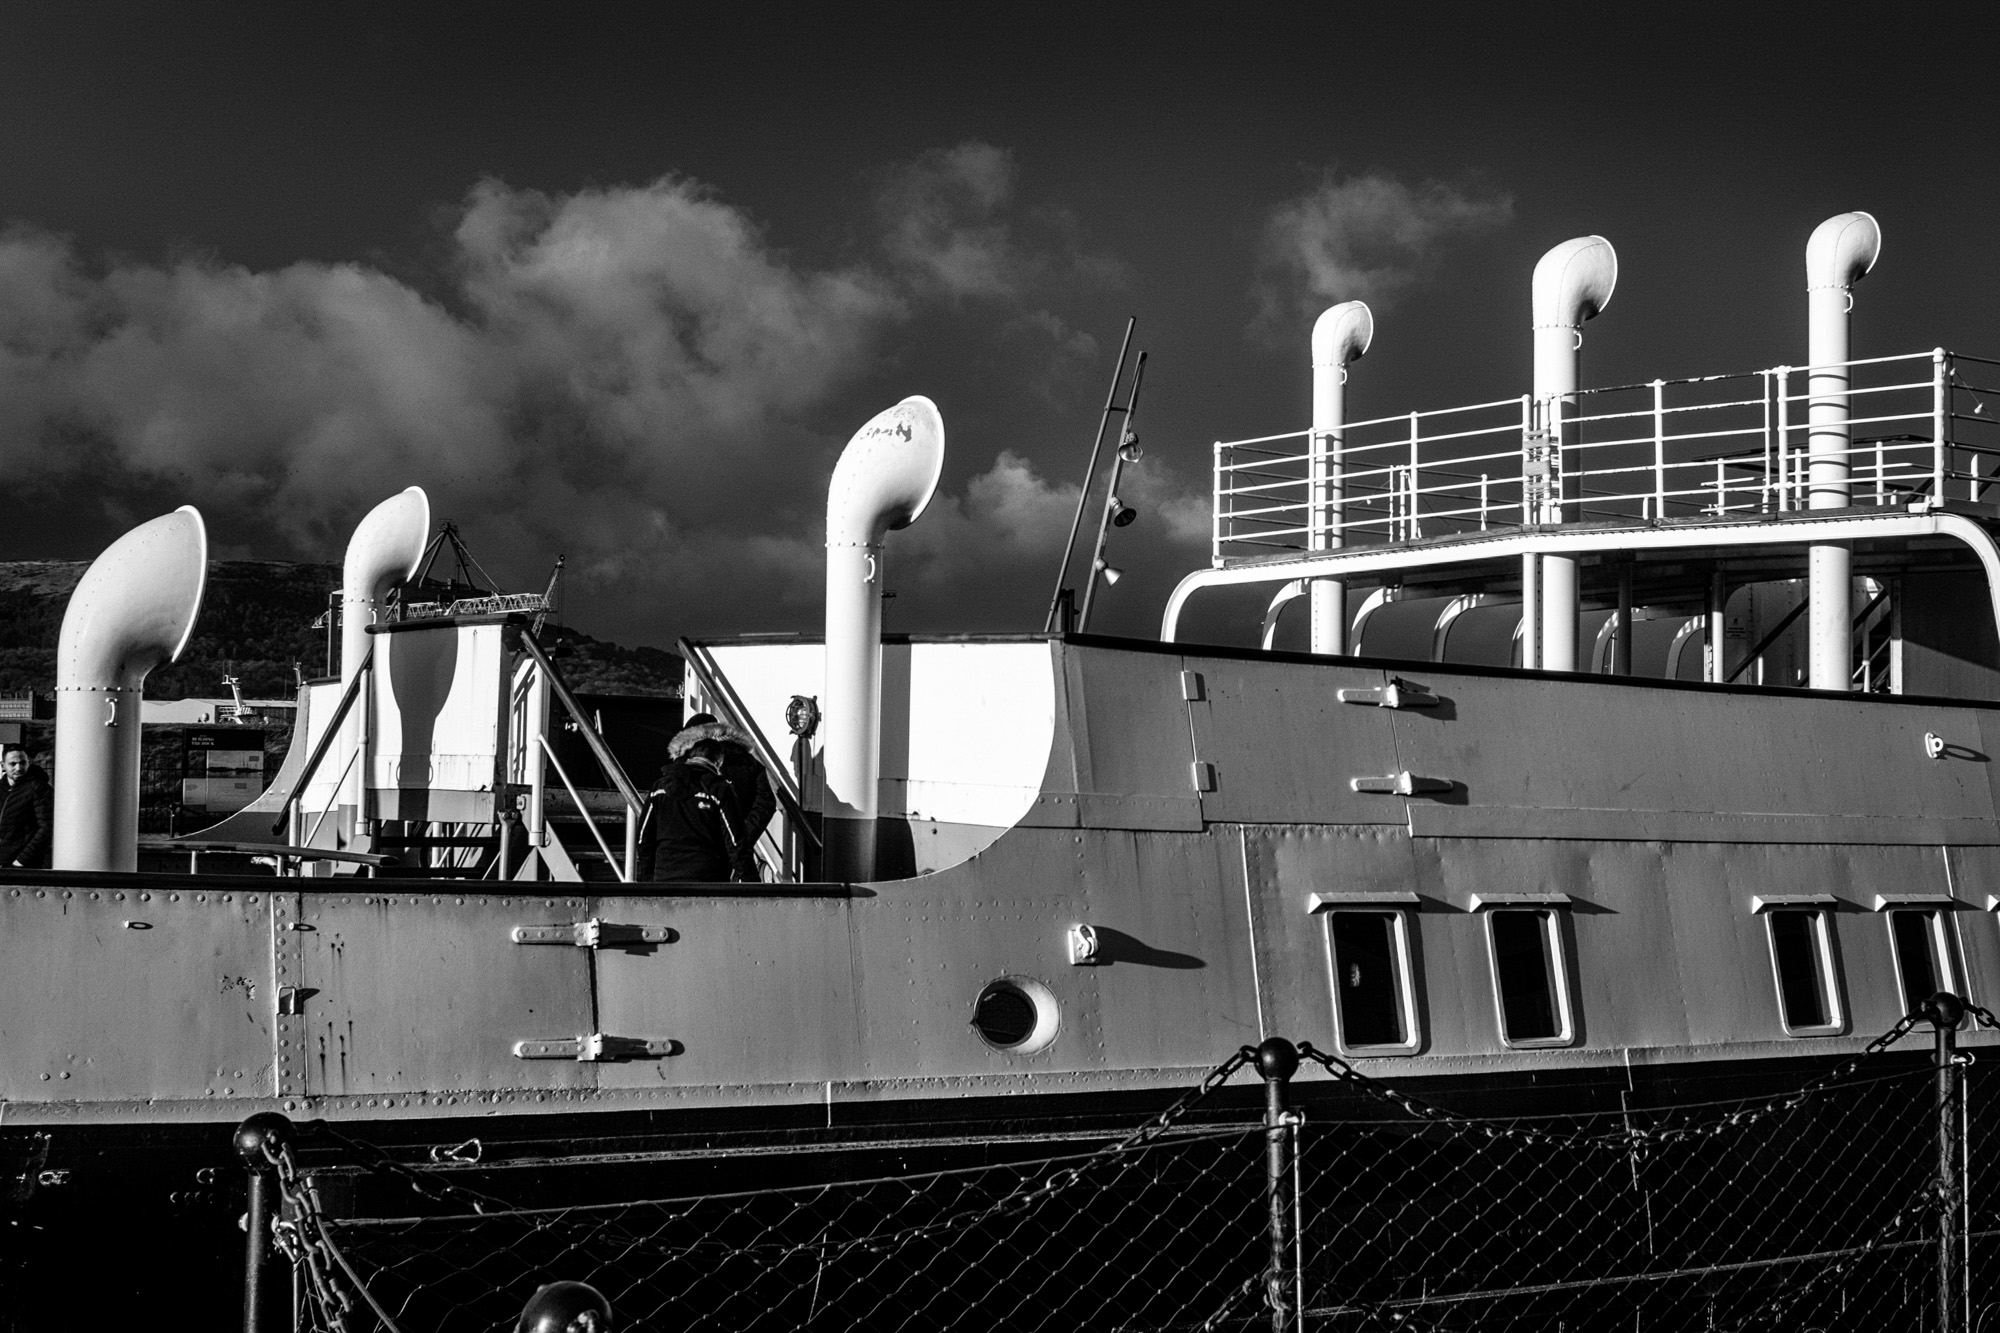 Inspried by Titanic, Challenged by Fujifilm X100F